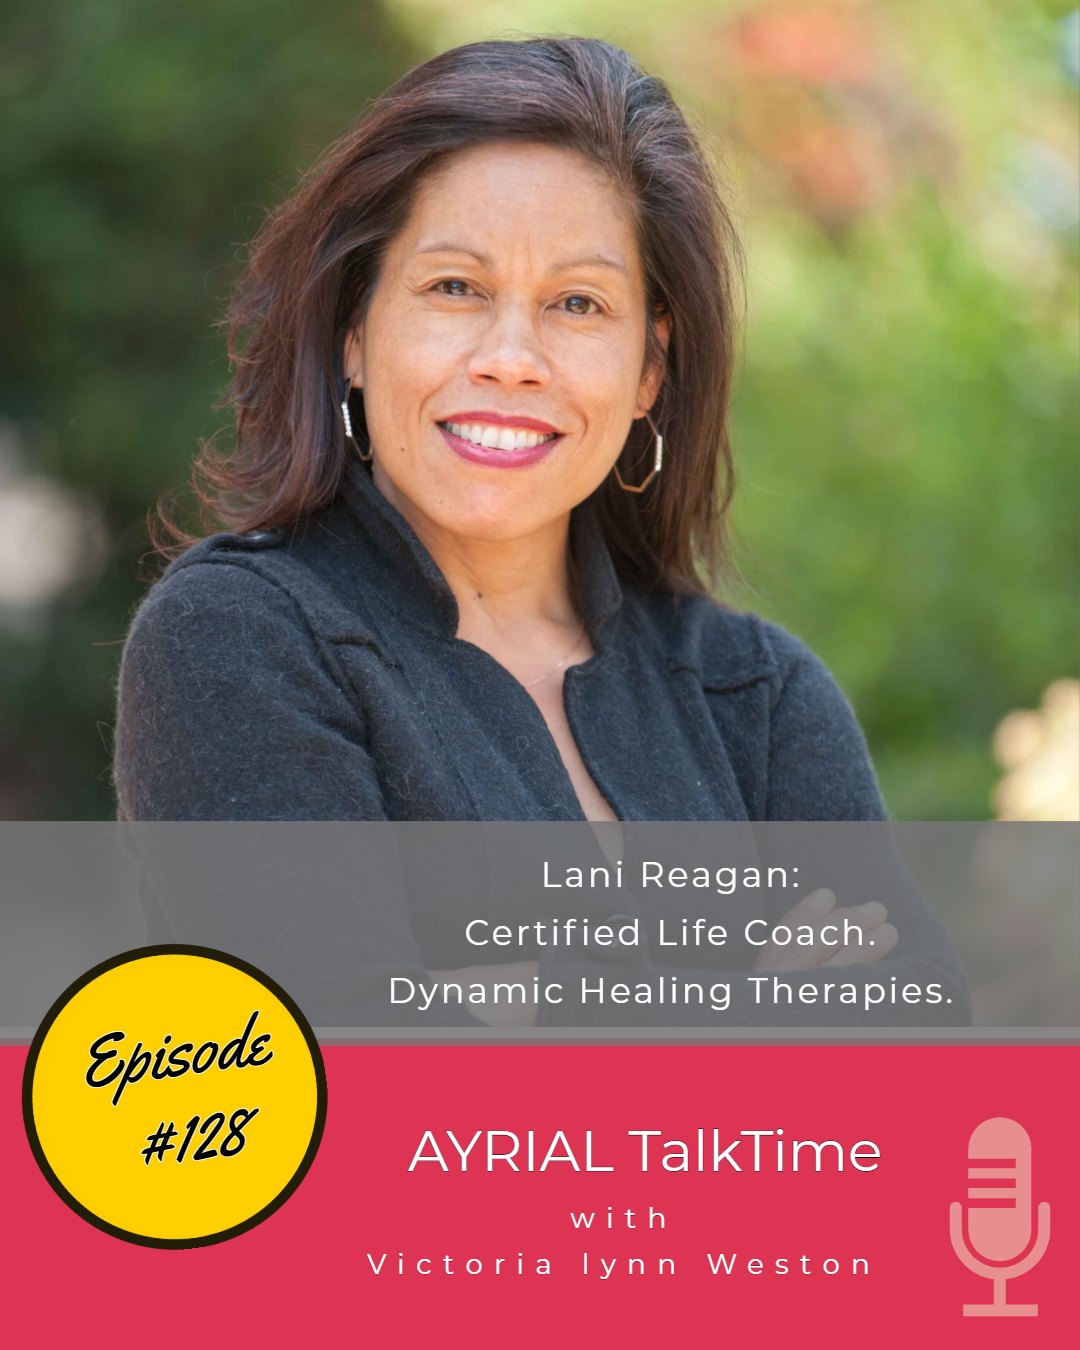 Lani Reagan, Founder of Dynamic Healing Therapies